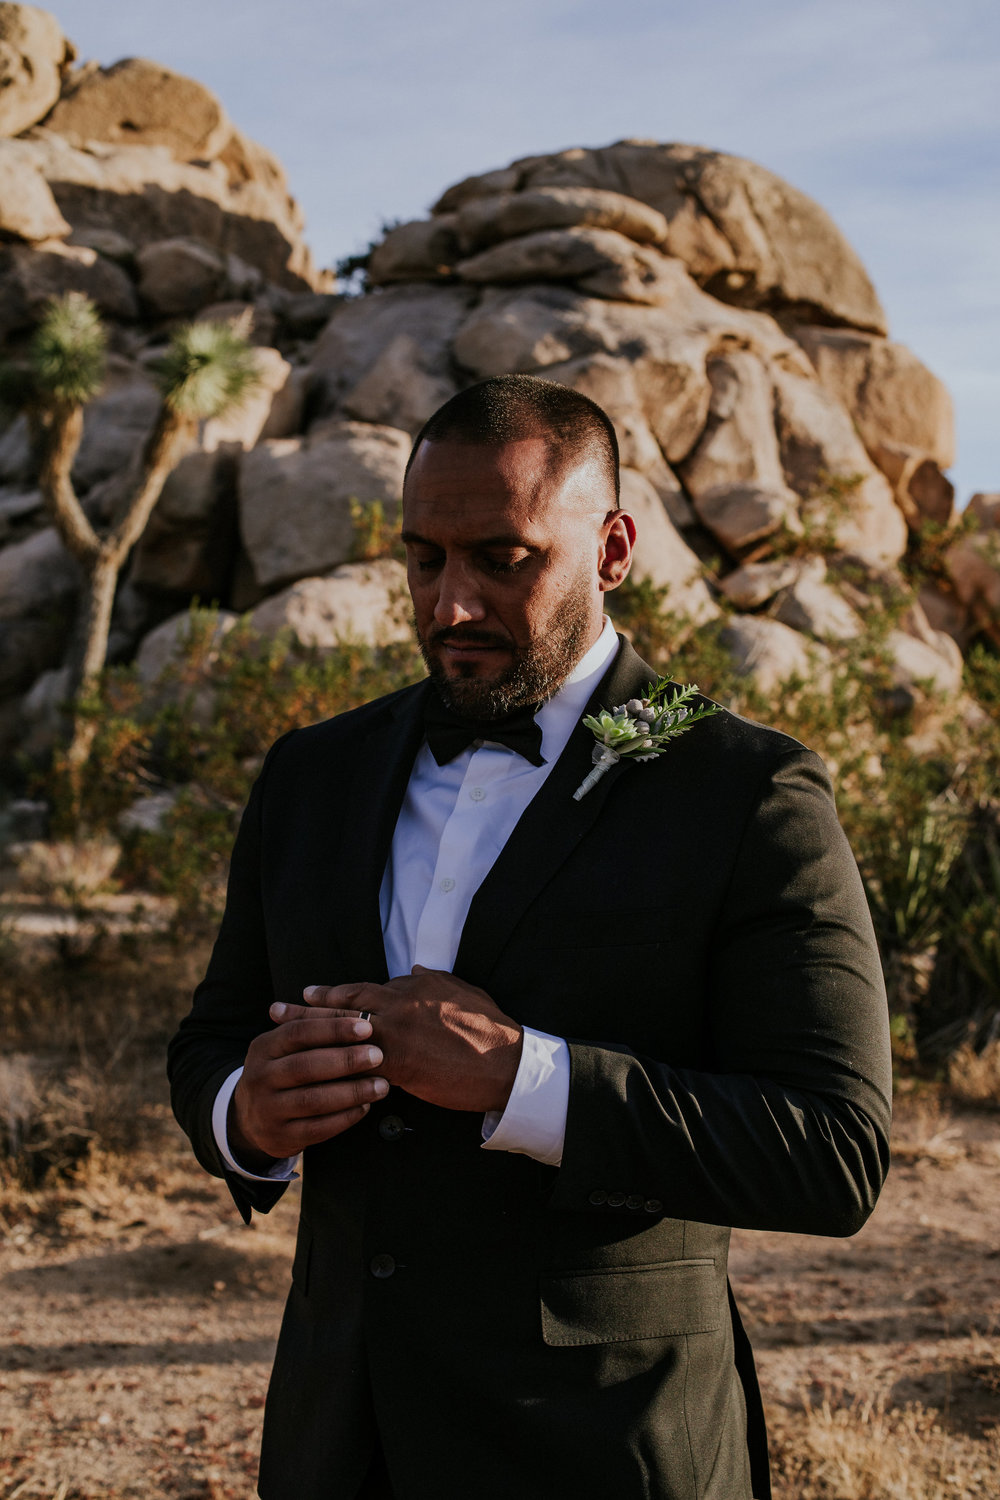 Joshua Tree Elopement Photographer - Destination Elopement Videographer - Joshua Tree Wedding - Vow of the Wild